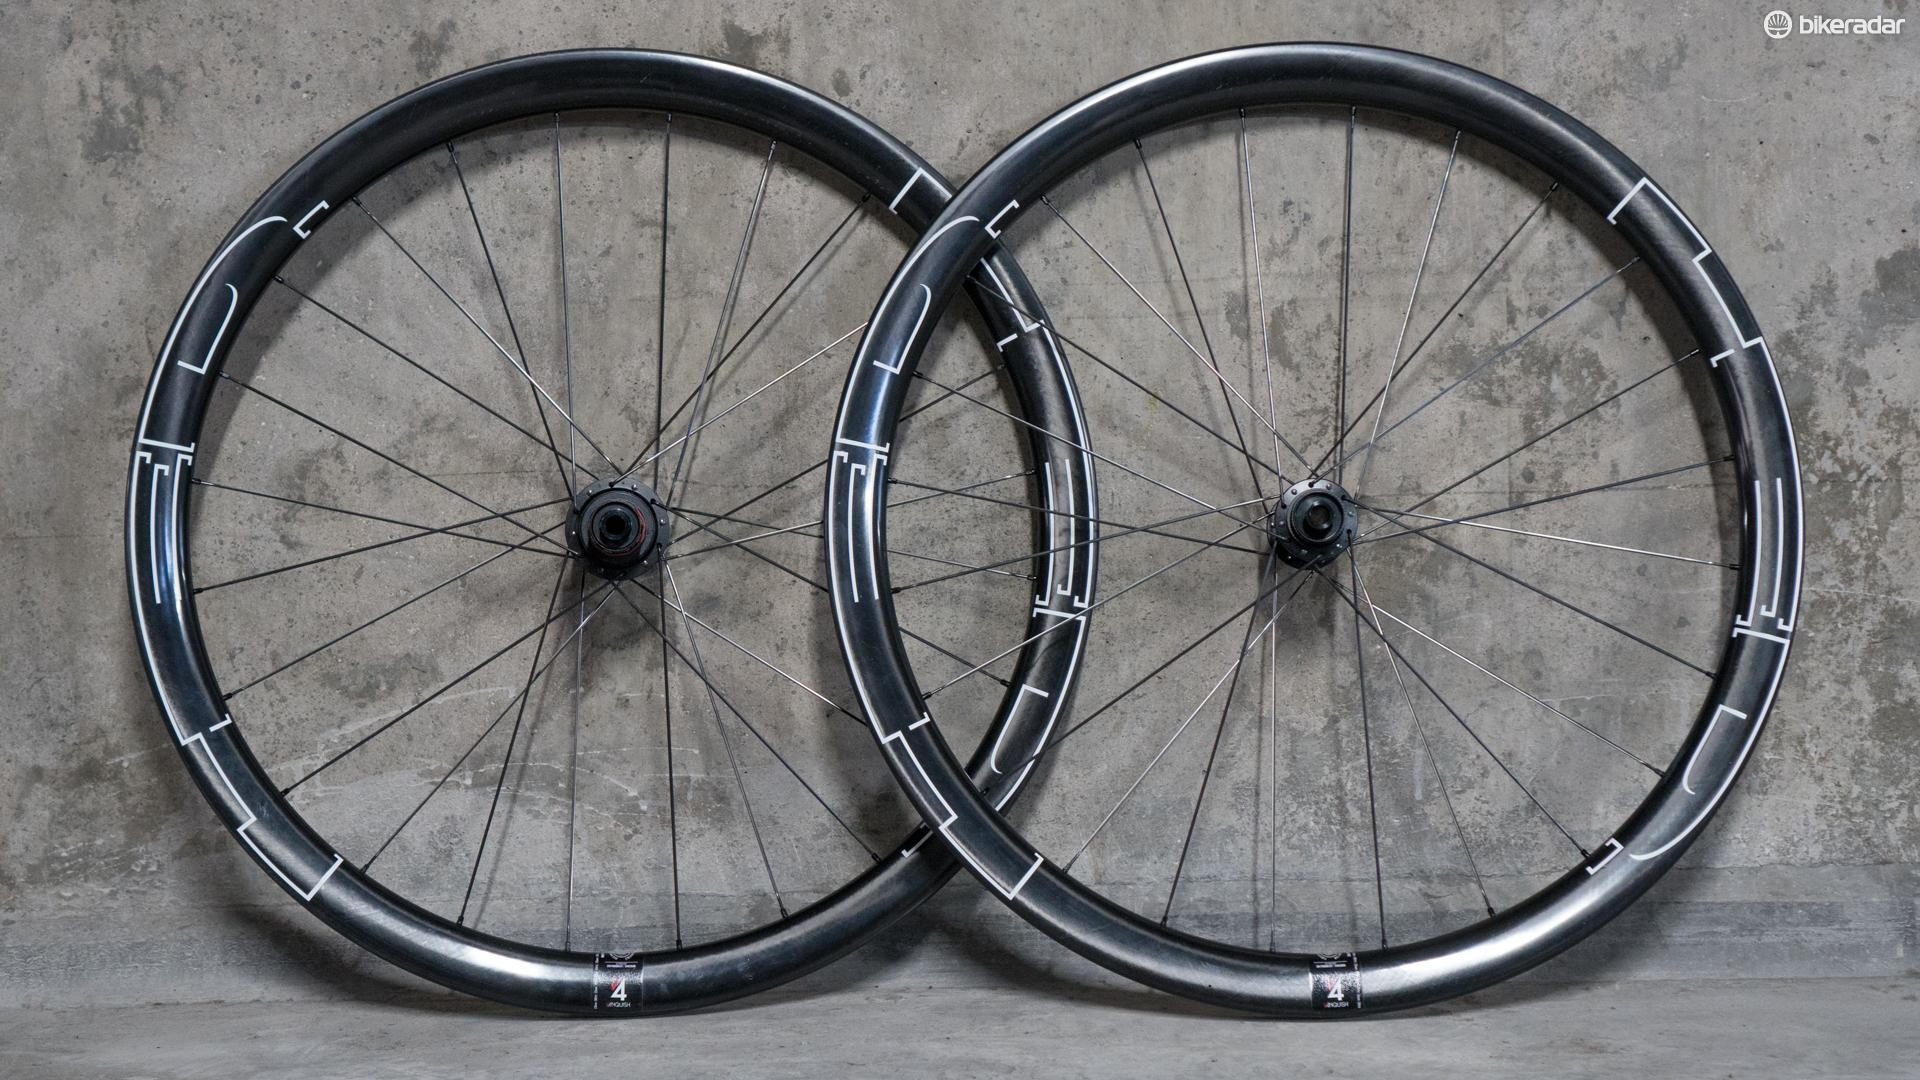 The HED Vanquish 4 wheelset is disc-only, tubeless-ready and designed to be versatile